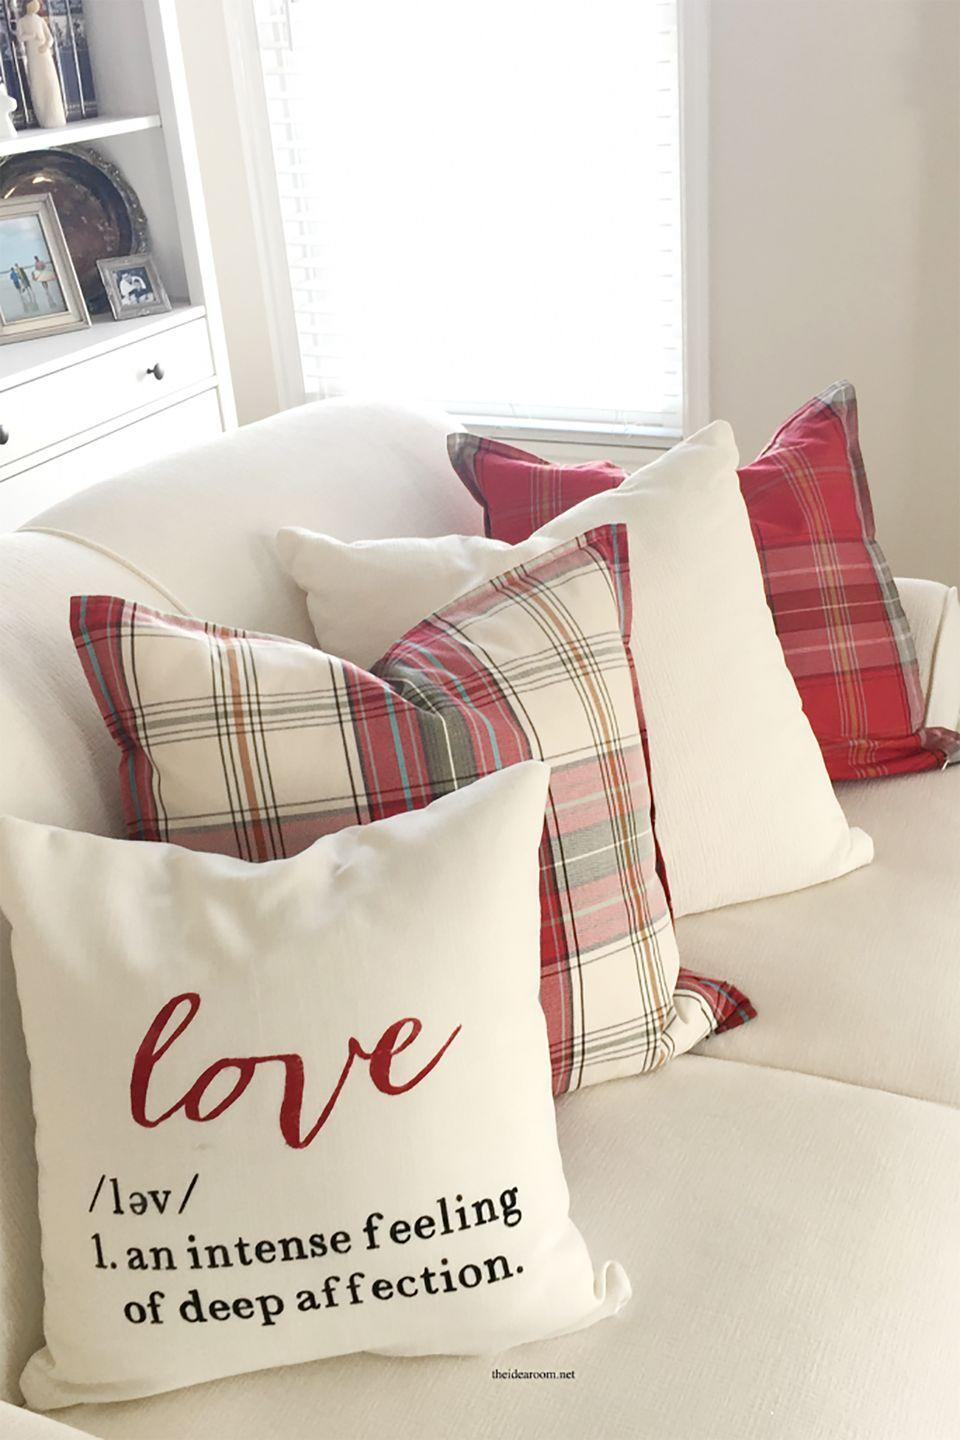 """<p>Pair this handmade love pillow with red and plaid ones for a festive Valentine's couch. </p><p><strong>Get the tutorial at <a href=""""https://www.theidearoom.net/valentines-day-pillow"""" rel=""""nofollow noopener"""" target=""""_blank"""" data-ylk=""""slk:The Idea Room"""" class=""""link rapid-noclick-resp"""">The Idea Room</a>.</strong></p><p><strong><a class=""""link rapid-noclick-resp"""" href=""""https://www.amazon.com/Cricut-2002026-Vinyl-Midnight/dp/B00BV50AN0?tag=syn-yahoo-20&ascsubtag=%5Bartid%7C10050.g.2971%5Bsrc%7Cyahoo-us"""" rel=""""nofollow noopener"""" target=""""_blank"""" data-ylk=""""slk:SHOP CRICUT VINYL"""">SHOP CRICUT VINYL</a><br></strong></p>"""